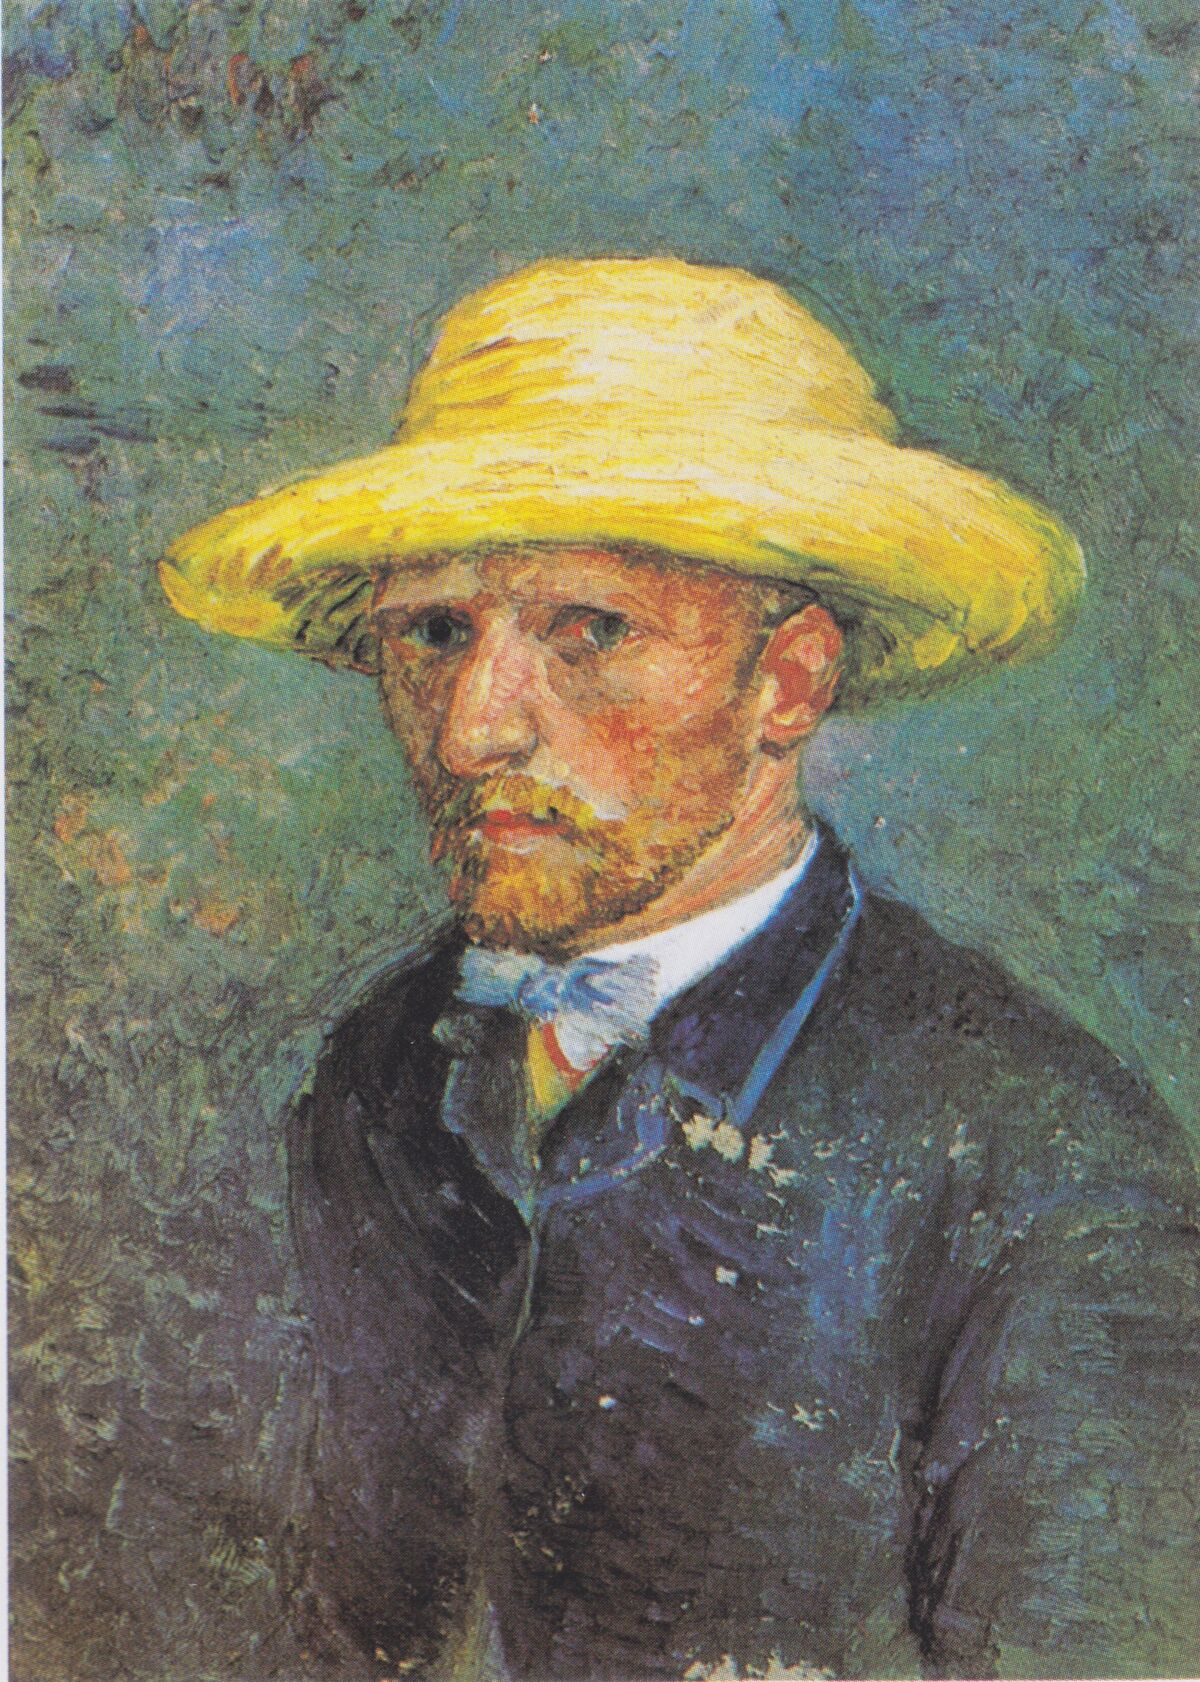 Vincent van Gogh, Portrait of Theo van Gogh, 1887. Photo via Wikimedia Commons.